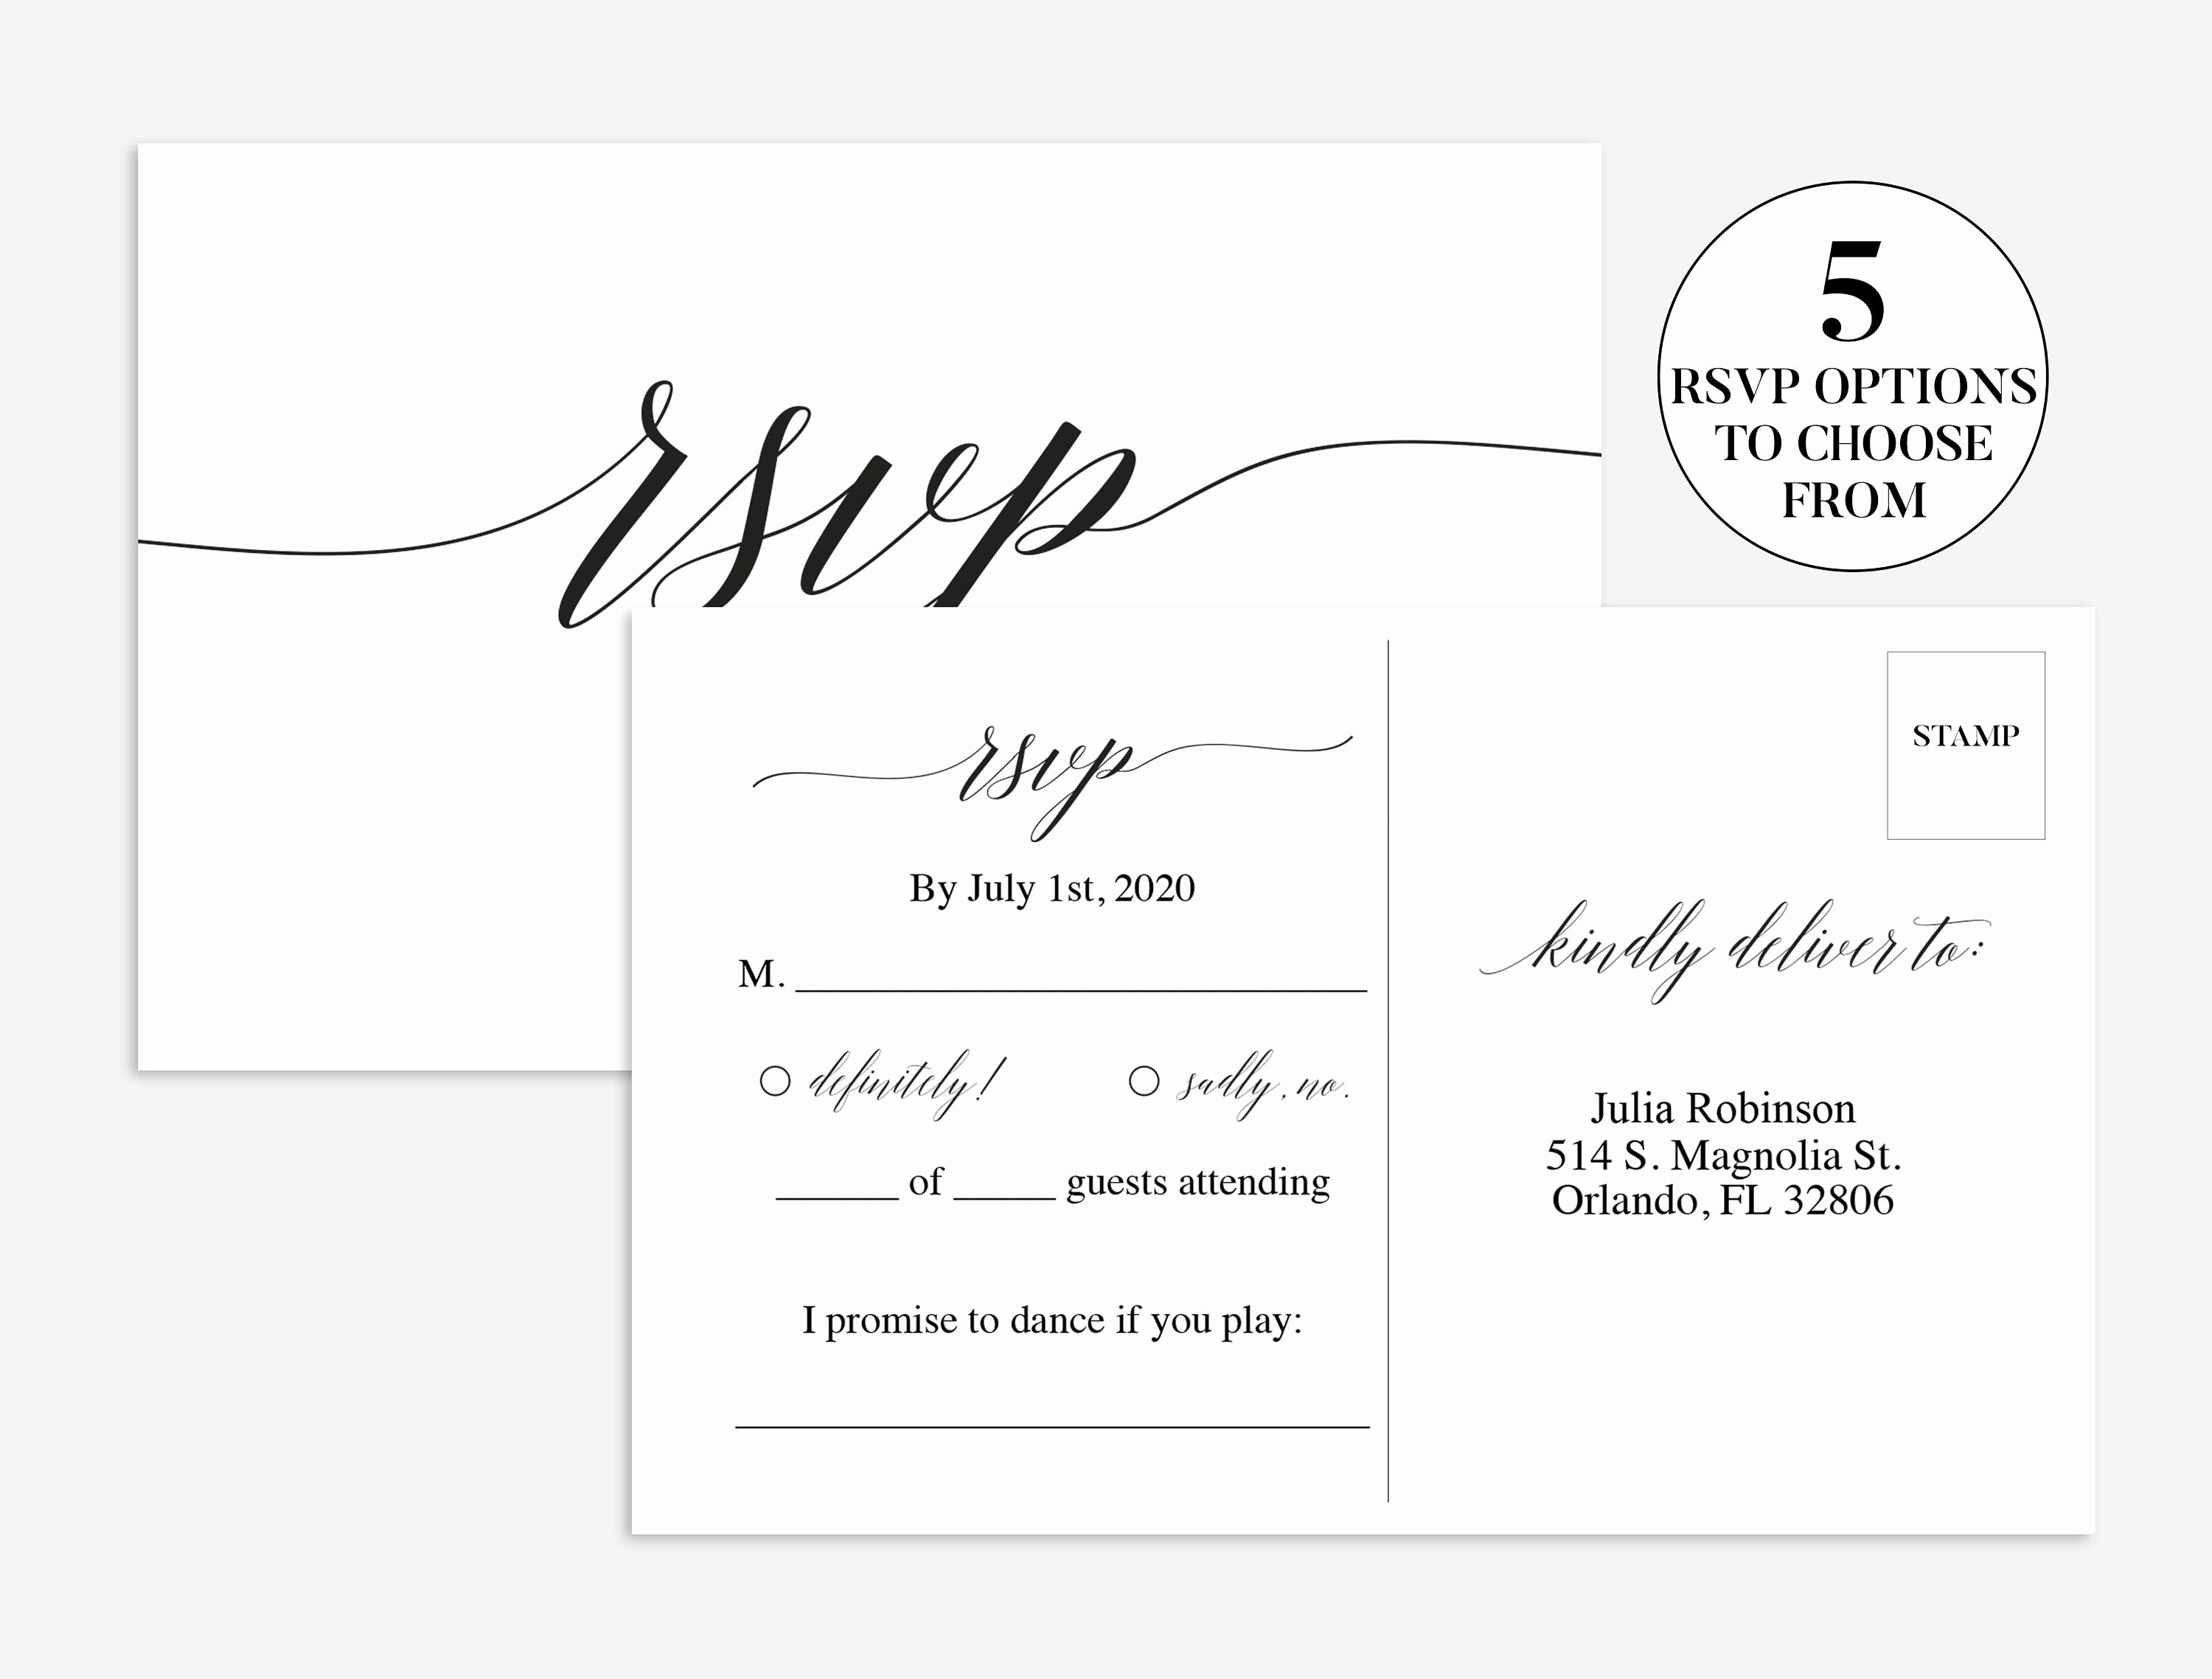 Rsvp Cards Template Free Awesome Wedding Rsvp Card Wedding Rsvp Template